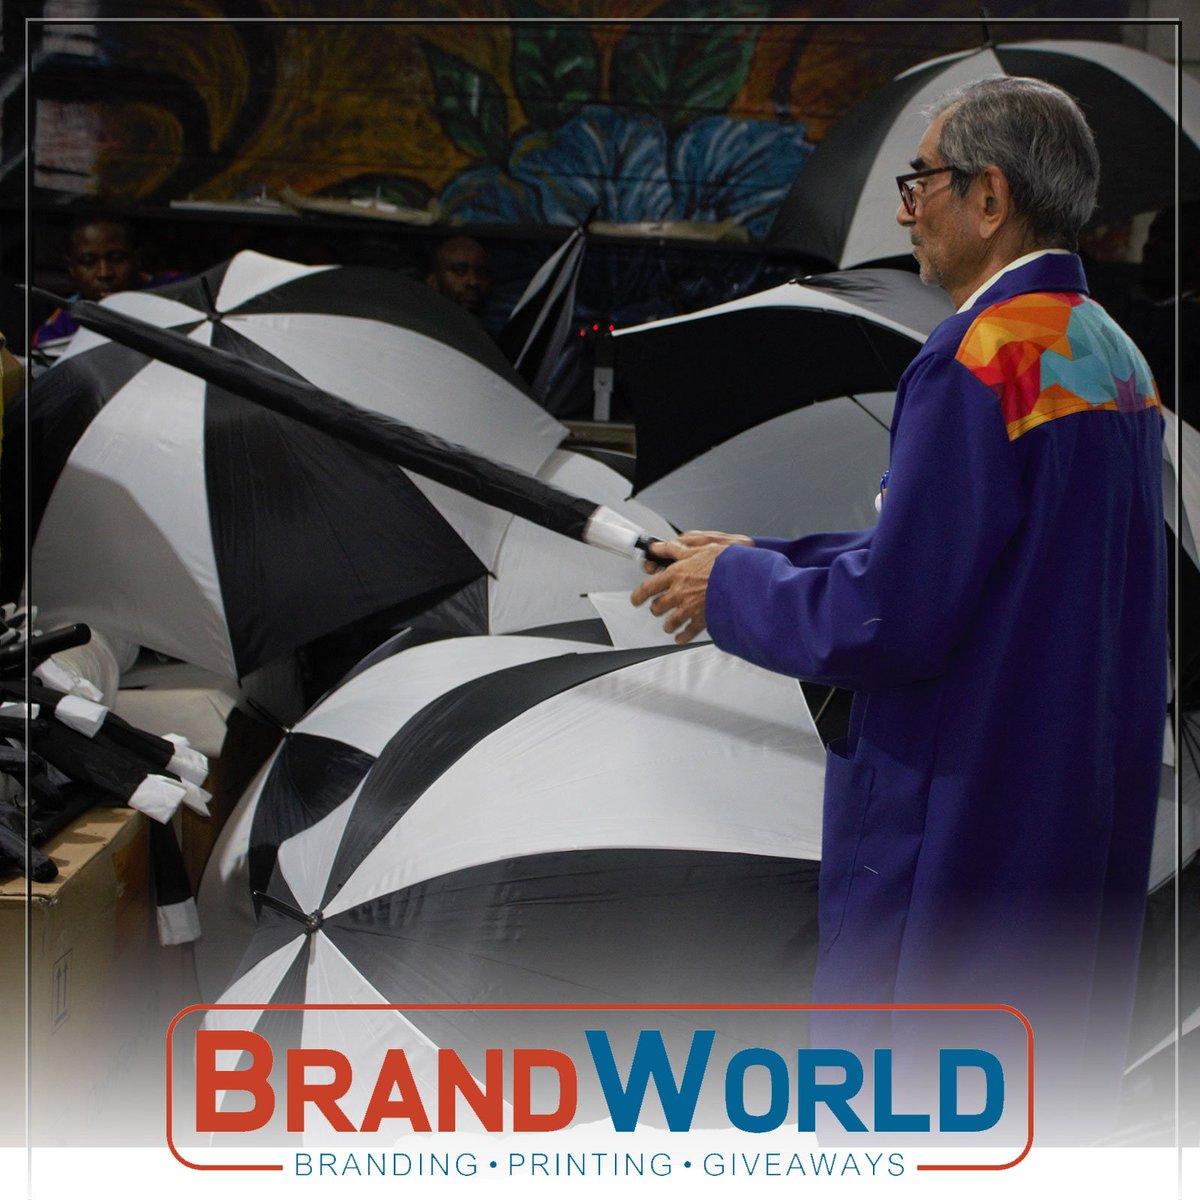 With this rainy season, the best giveaway to give to your client is a branded umbrella. Get Branded. #Branding #Printing #Giveaways #BrandingExperts #Umbrellas #Rains #Downpour #BrandWorld #Nairobi #Kenya<br>http://pic.twitter.com/35c46bEys6